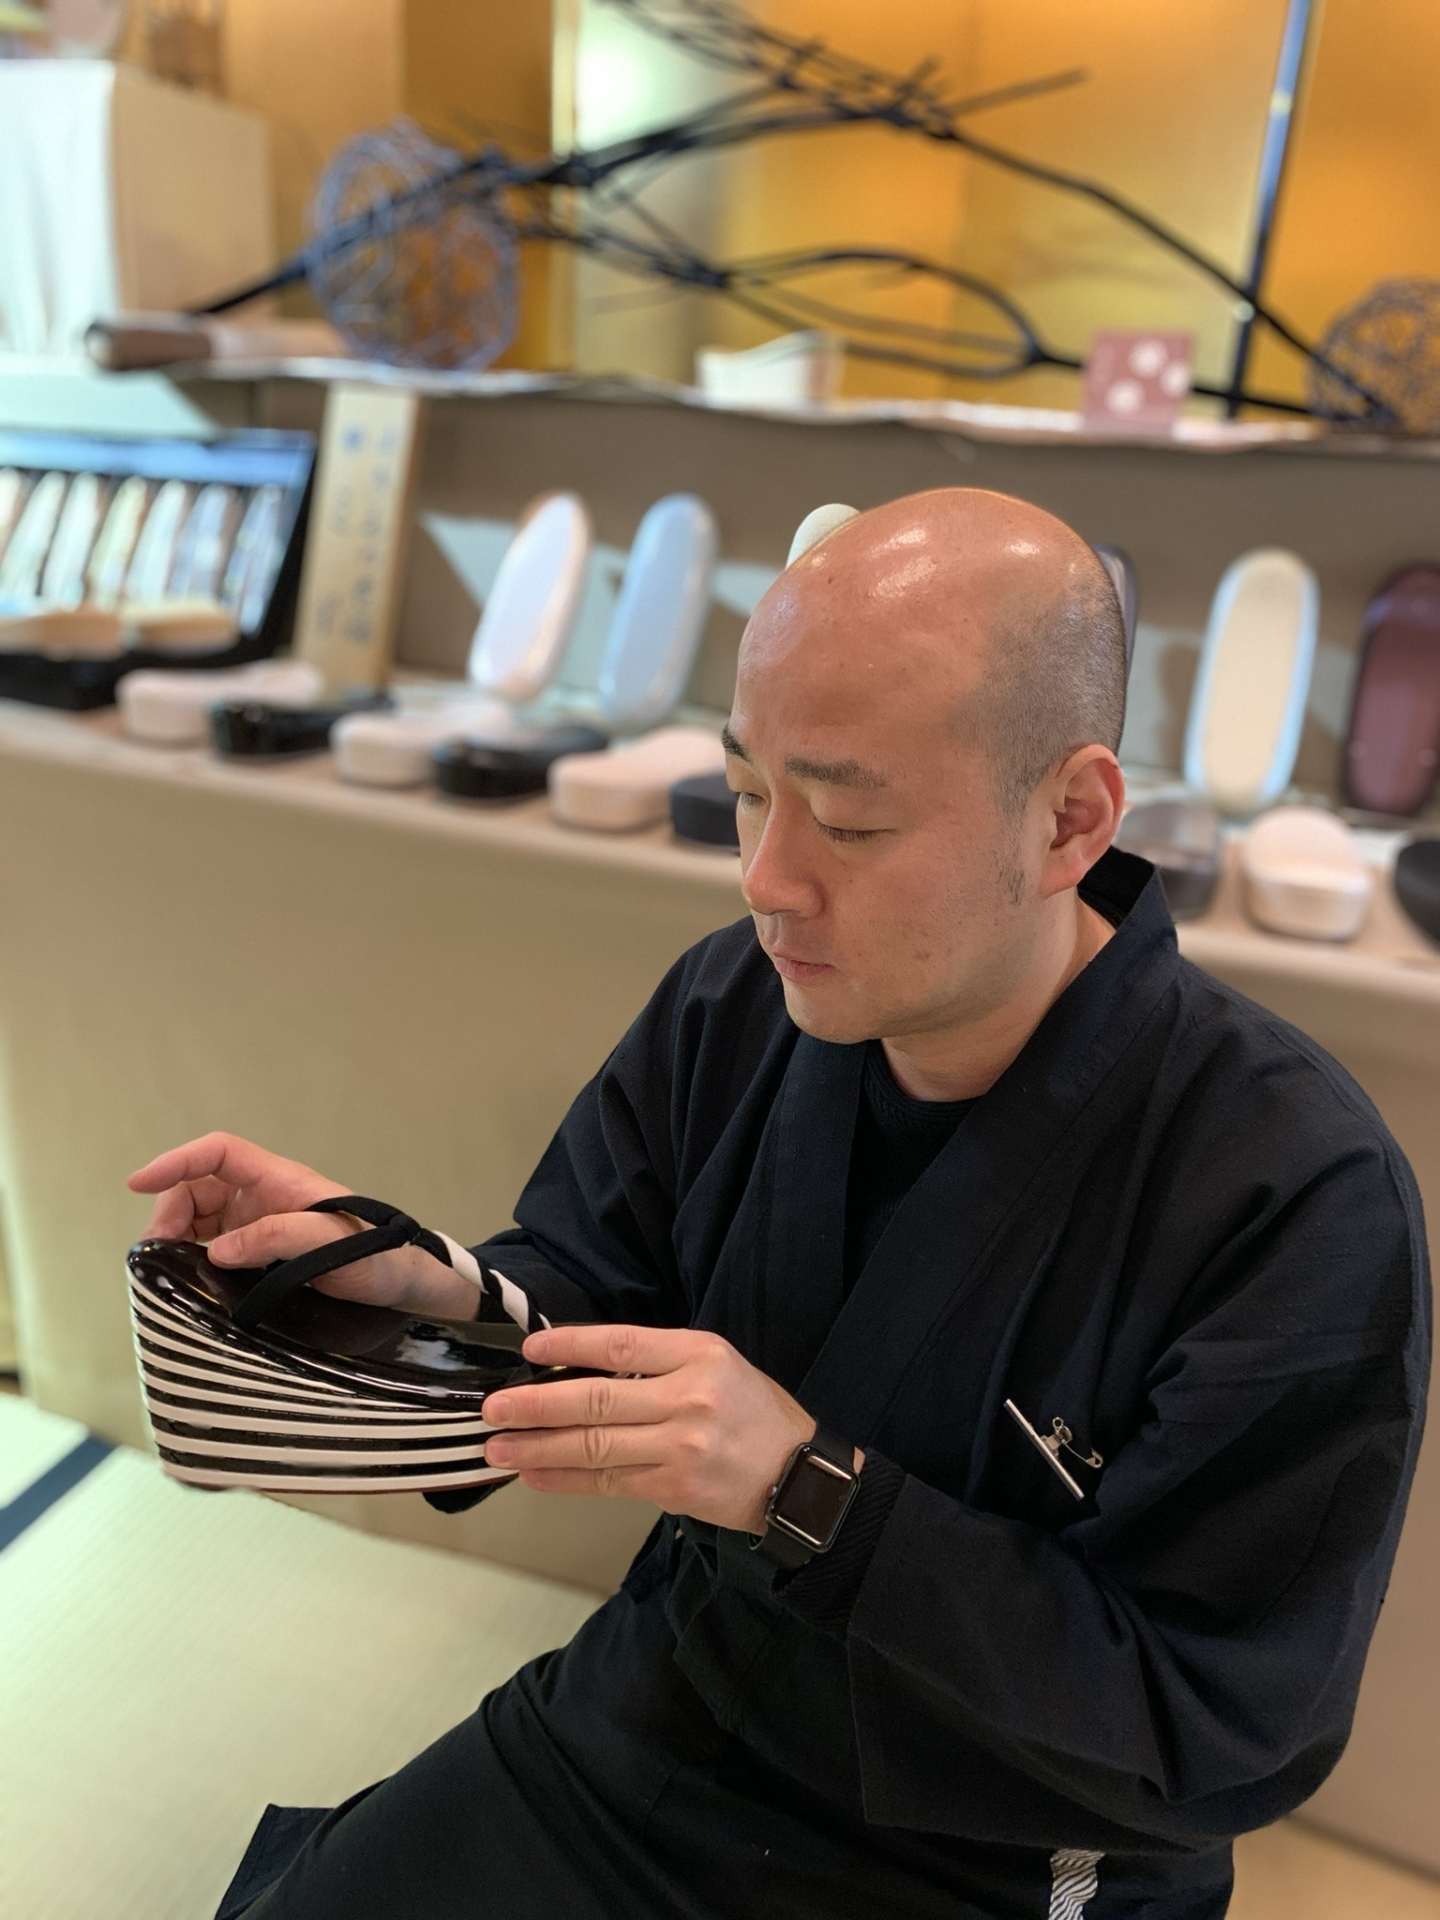 【Yotsuya Sanei】Information on summer footwear and event starting from July 1st, 2020